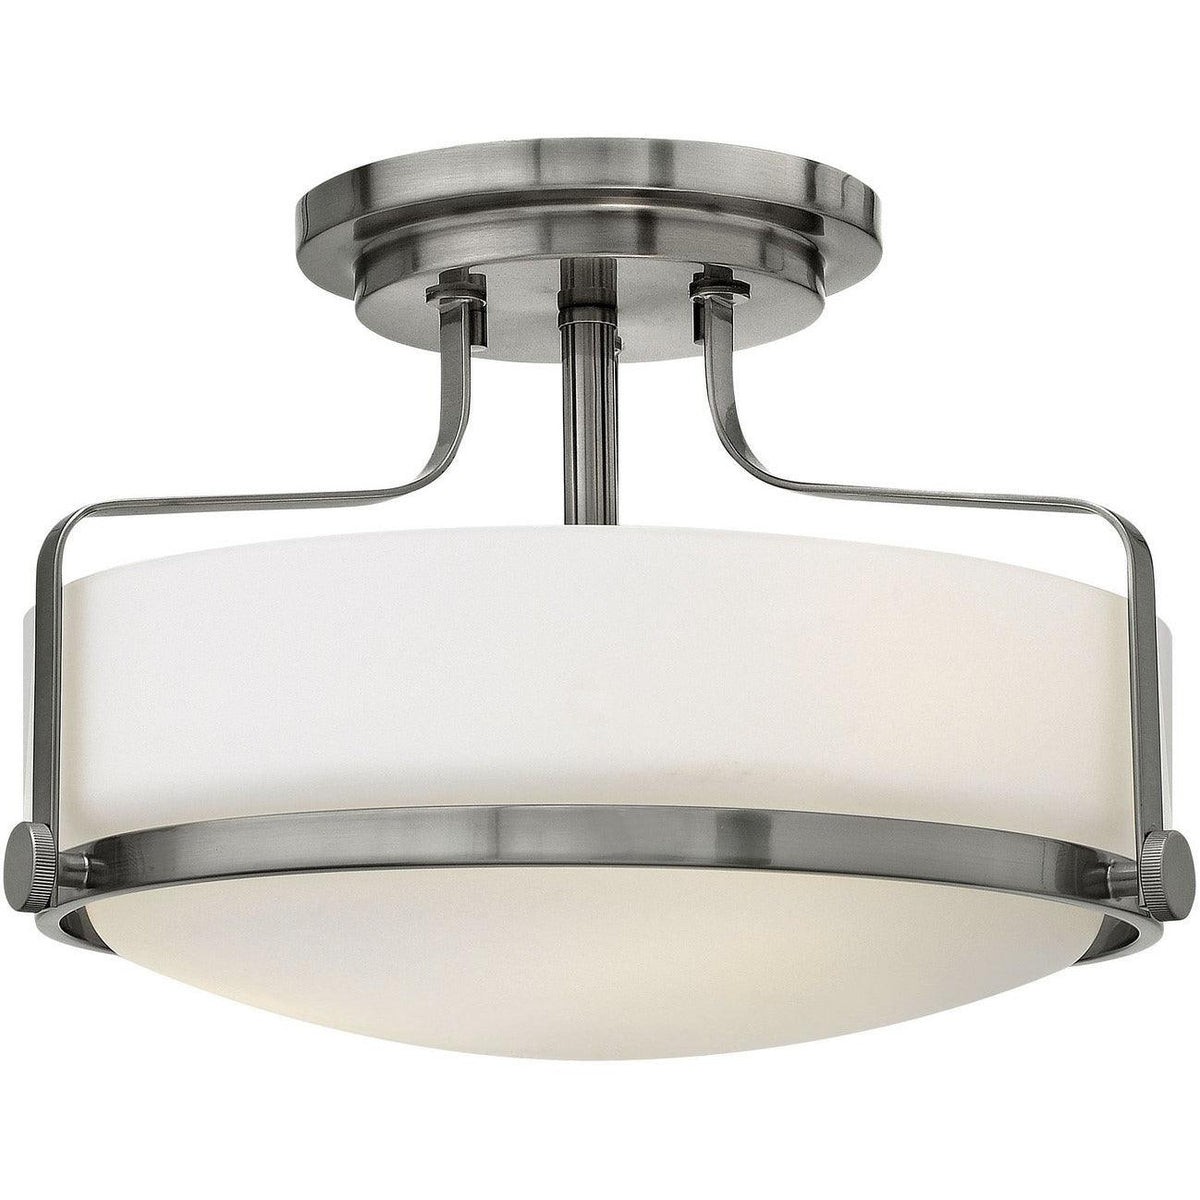 Hinkley Canada - 3641BN - Three Light Semi-Flush Mount - Harper - Brushed Nickel